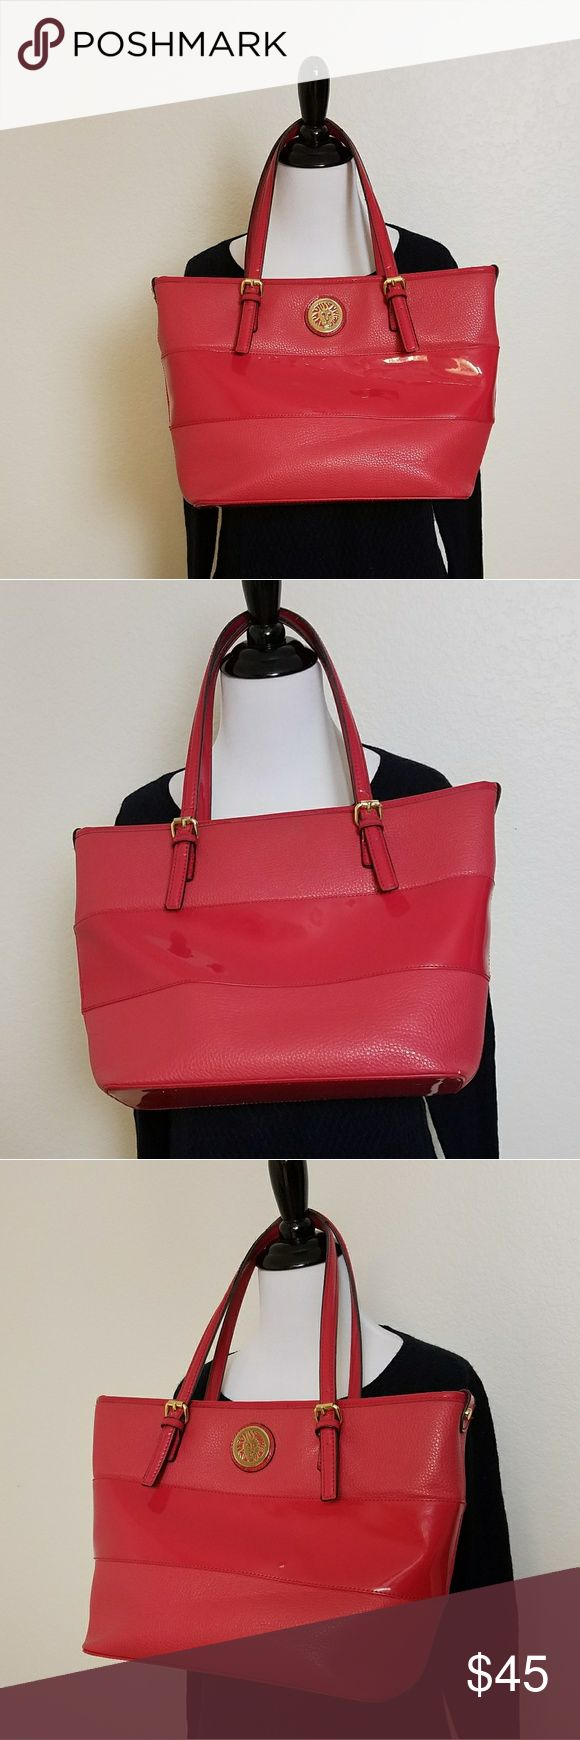 Anne Klein Pink Patent Leather Shoulder Bag Tote Good condition, some wear on the handles, the body inside and out is in great condition (small mark on the back top in the middle - see photo)  Inside is 3 sections: middle section zips closed, front side has 2 slip pockets, and on the back there's small zipper pocket    Inside is lined with a navy and cream polka dot fabric  Perfect for work! Could fit a small laptop or tablet.   Measures approximately 16 inches across and 10 inches down with…